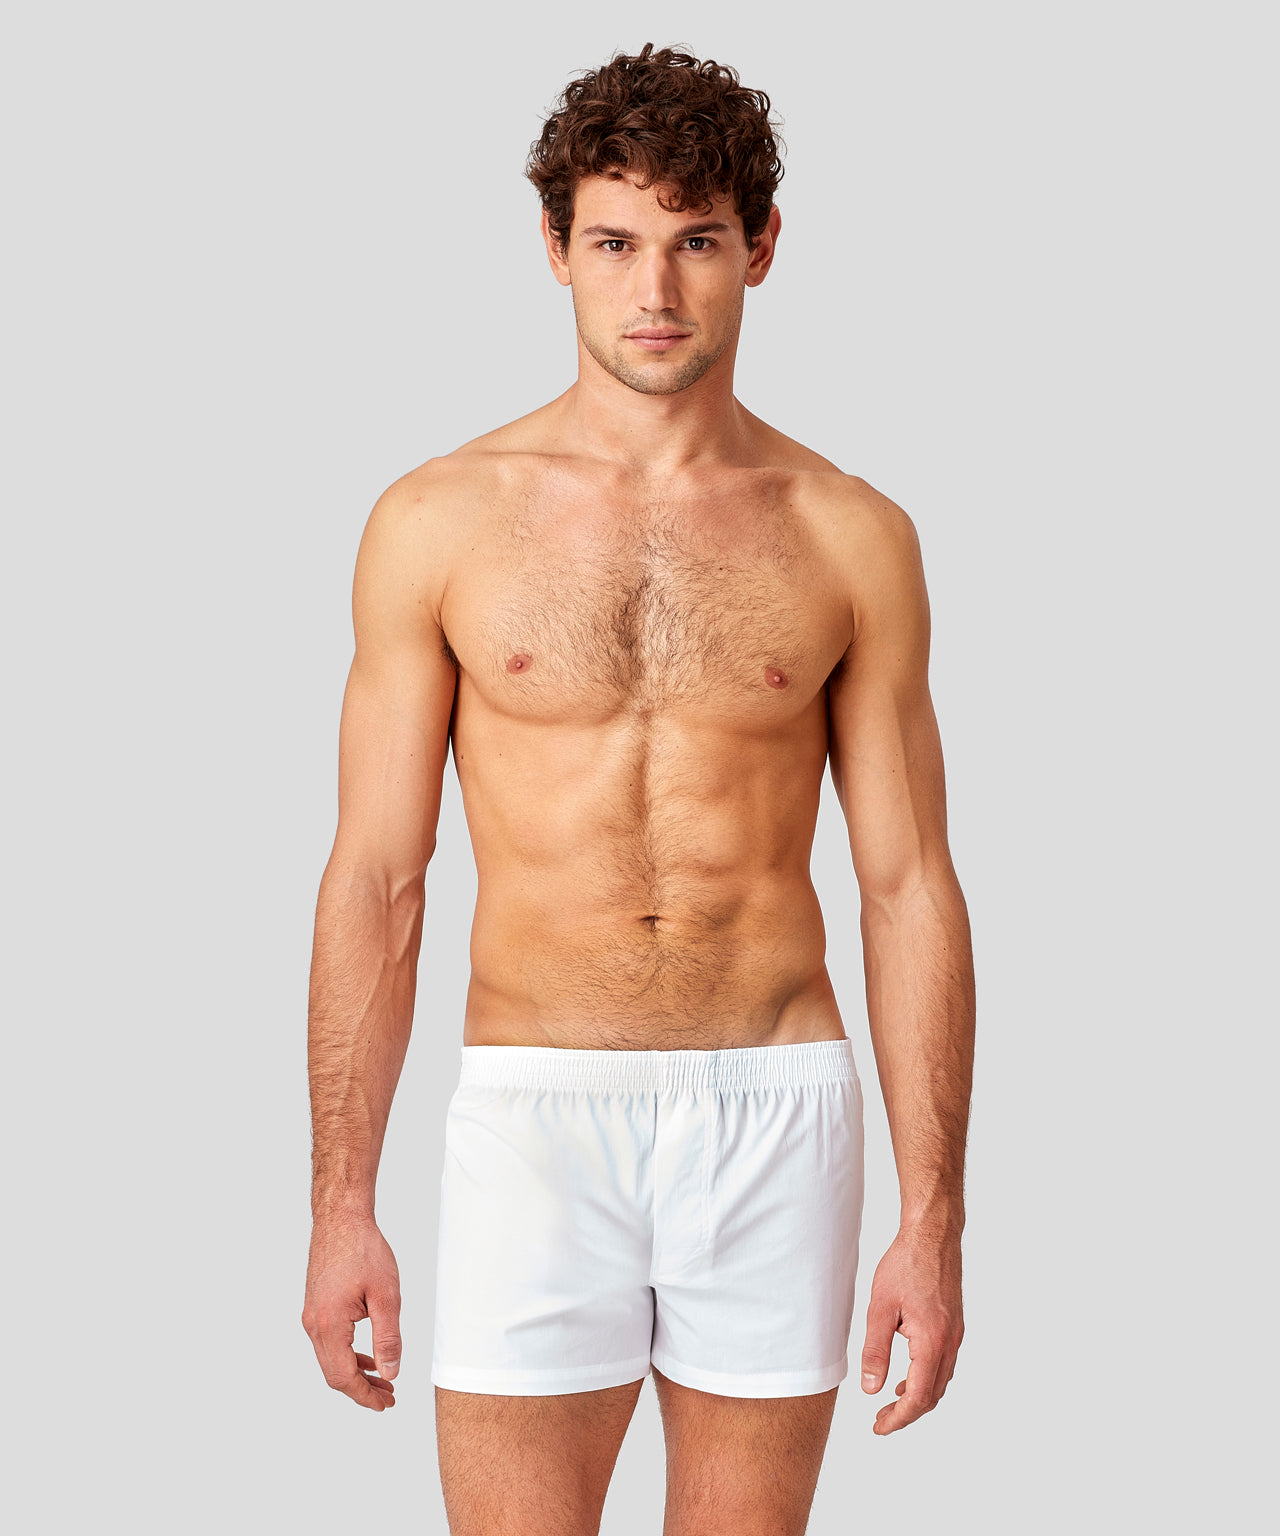 747 Boxer Shorts Kit - white